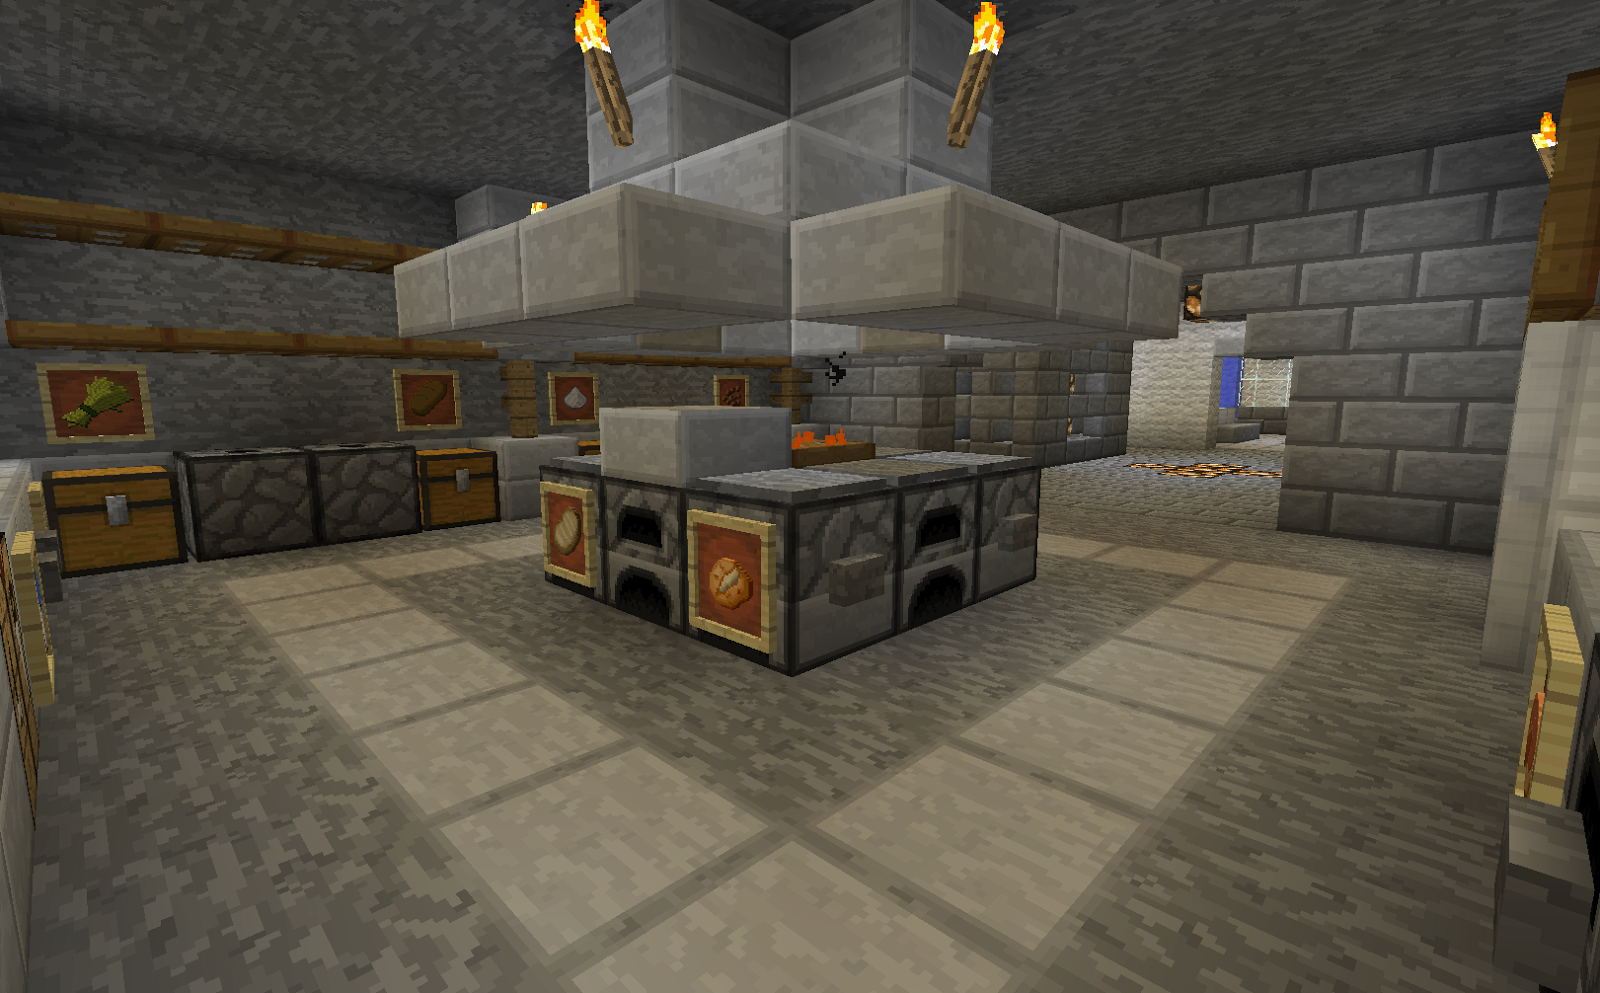 corner sinks kitchen countertops for minecraft projects: kitchen: with functional ...